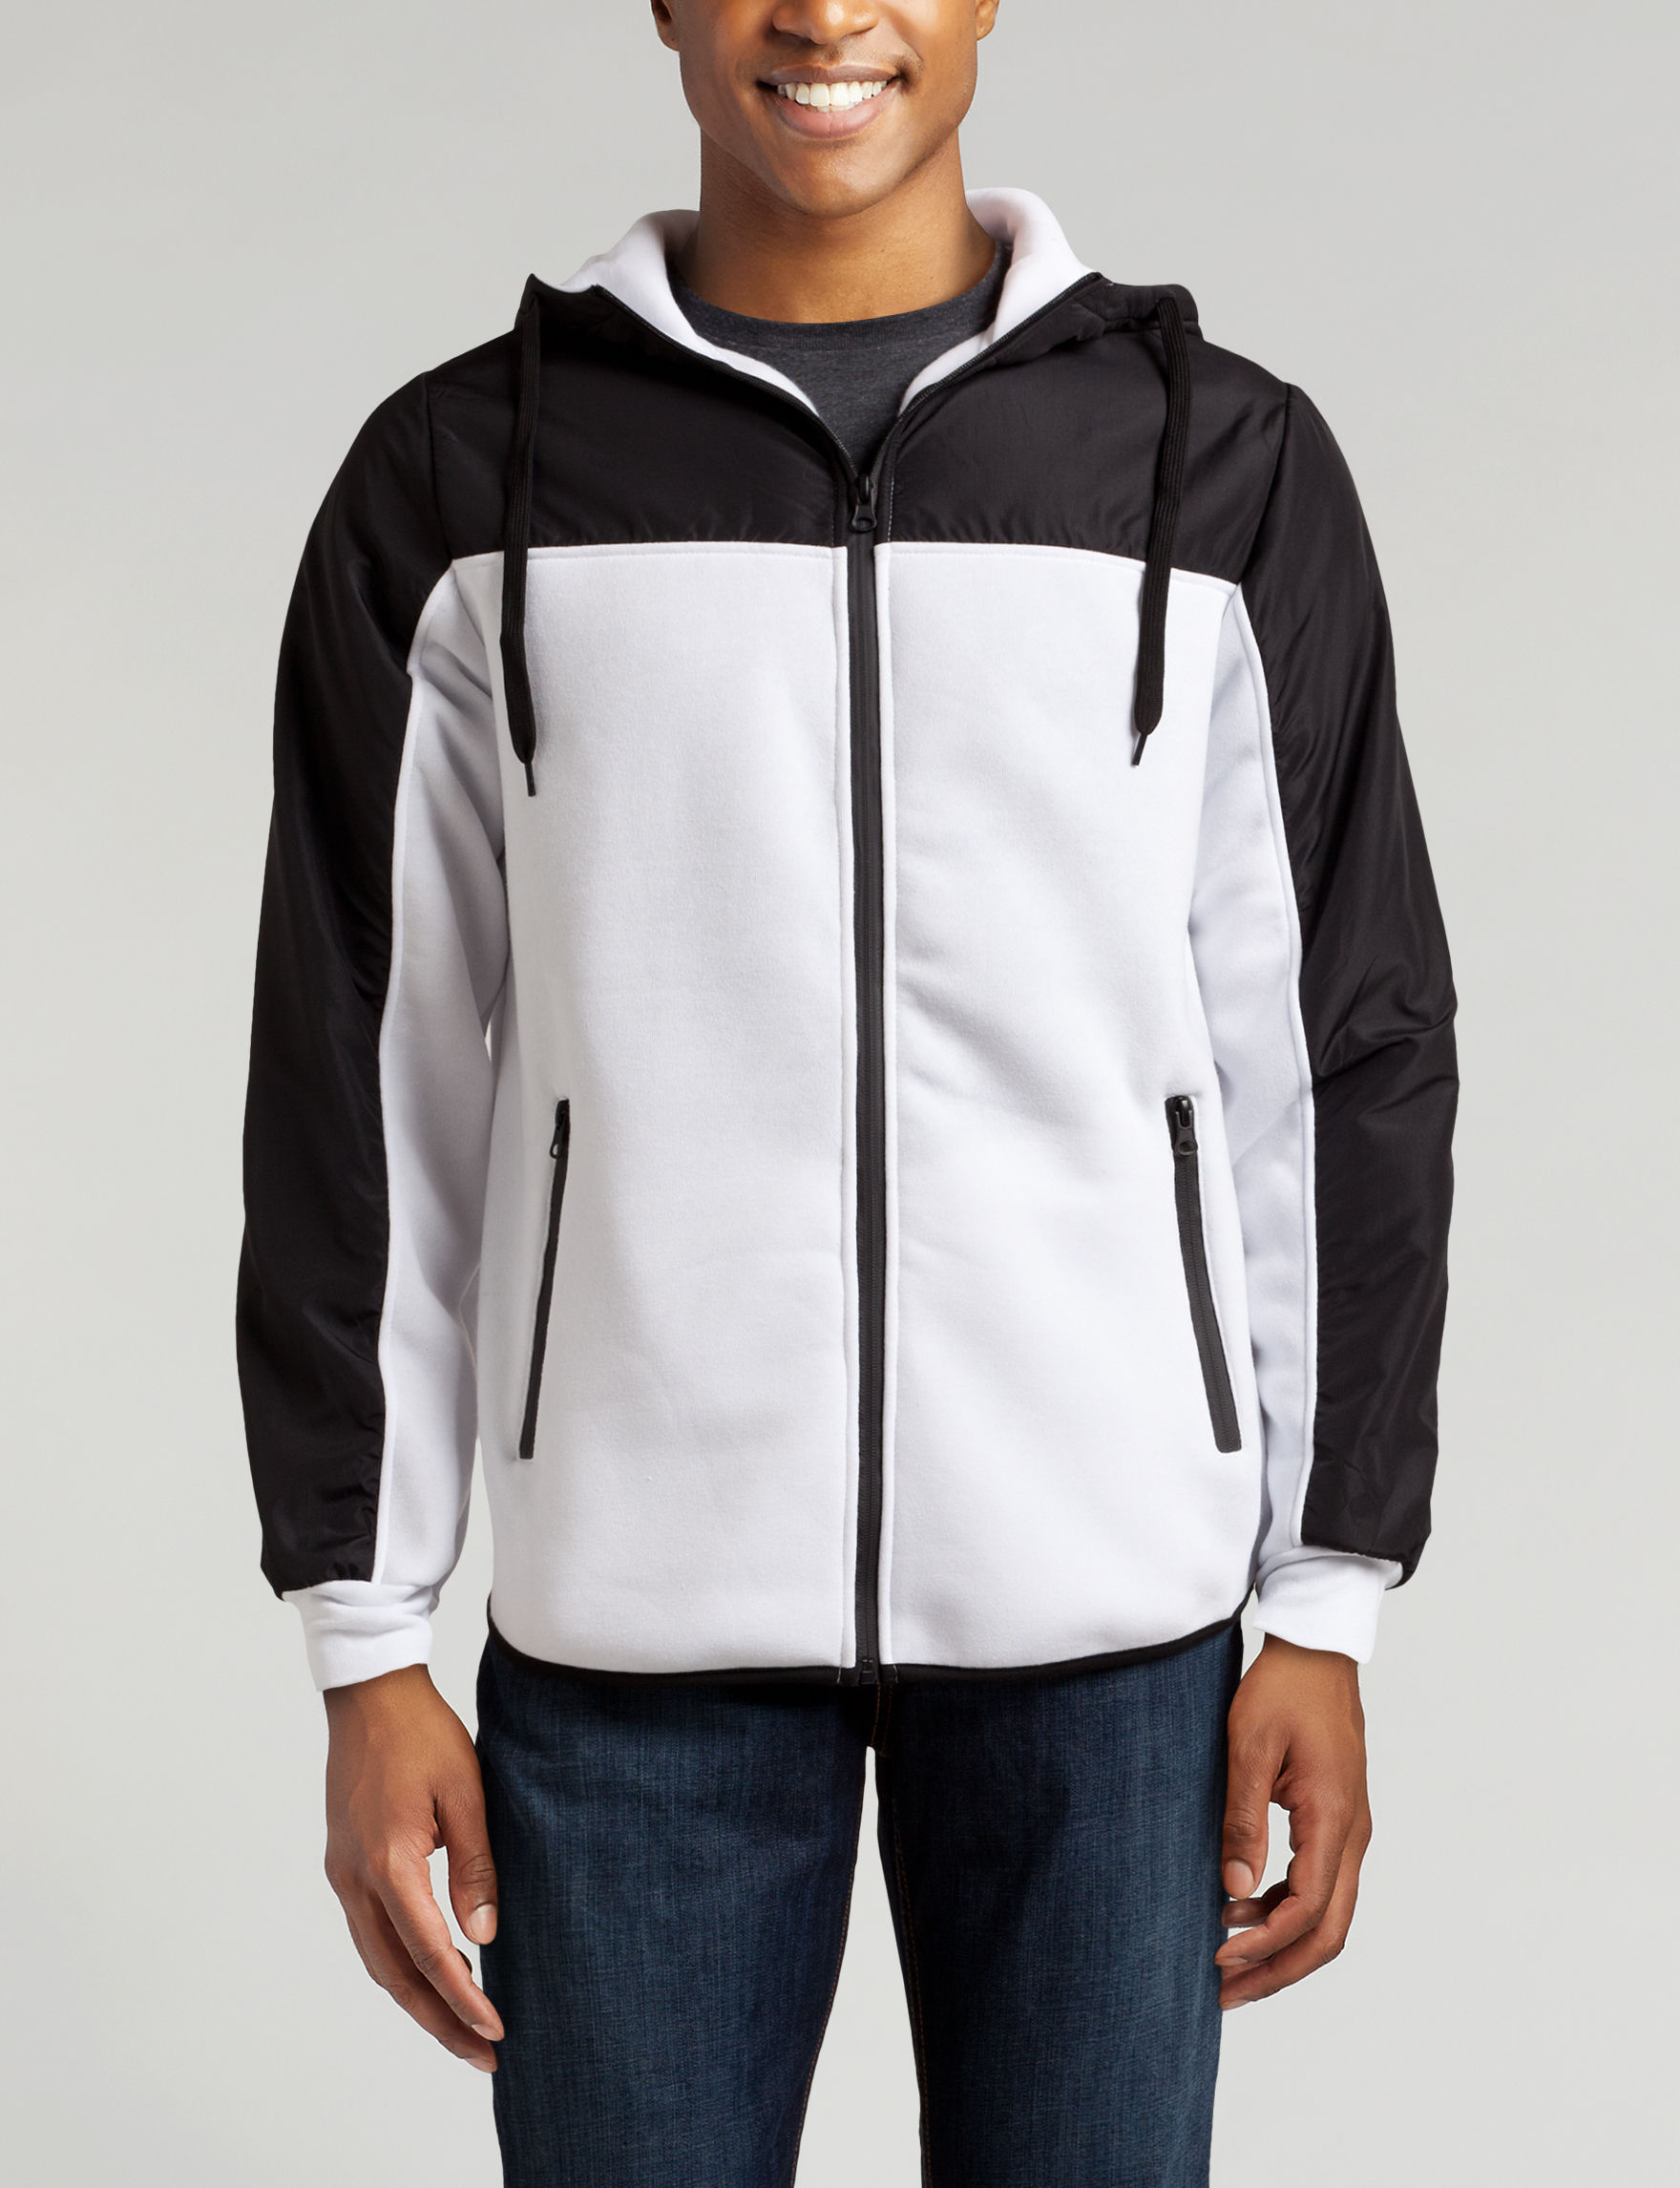 Point Zero White / Black Zip-Ups